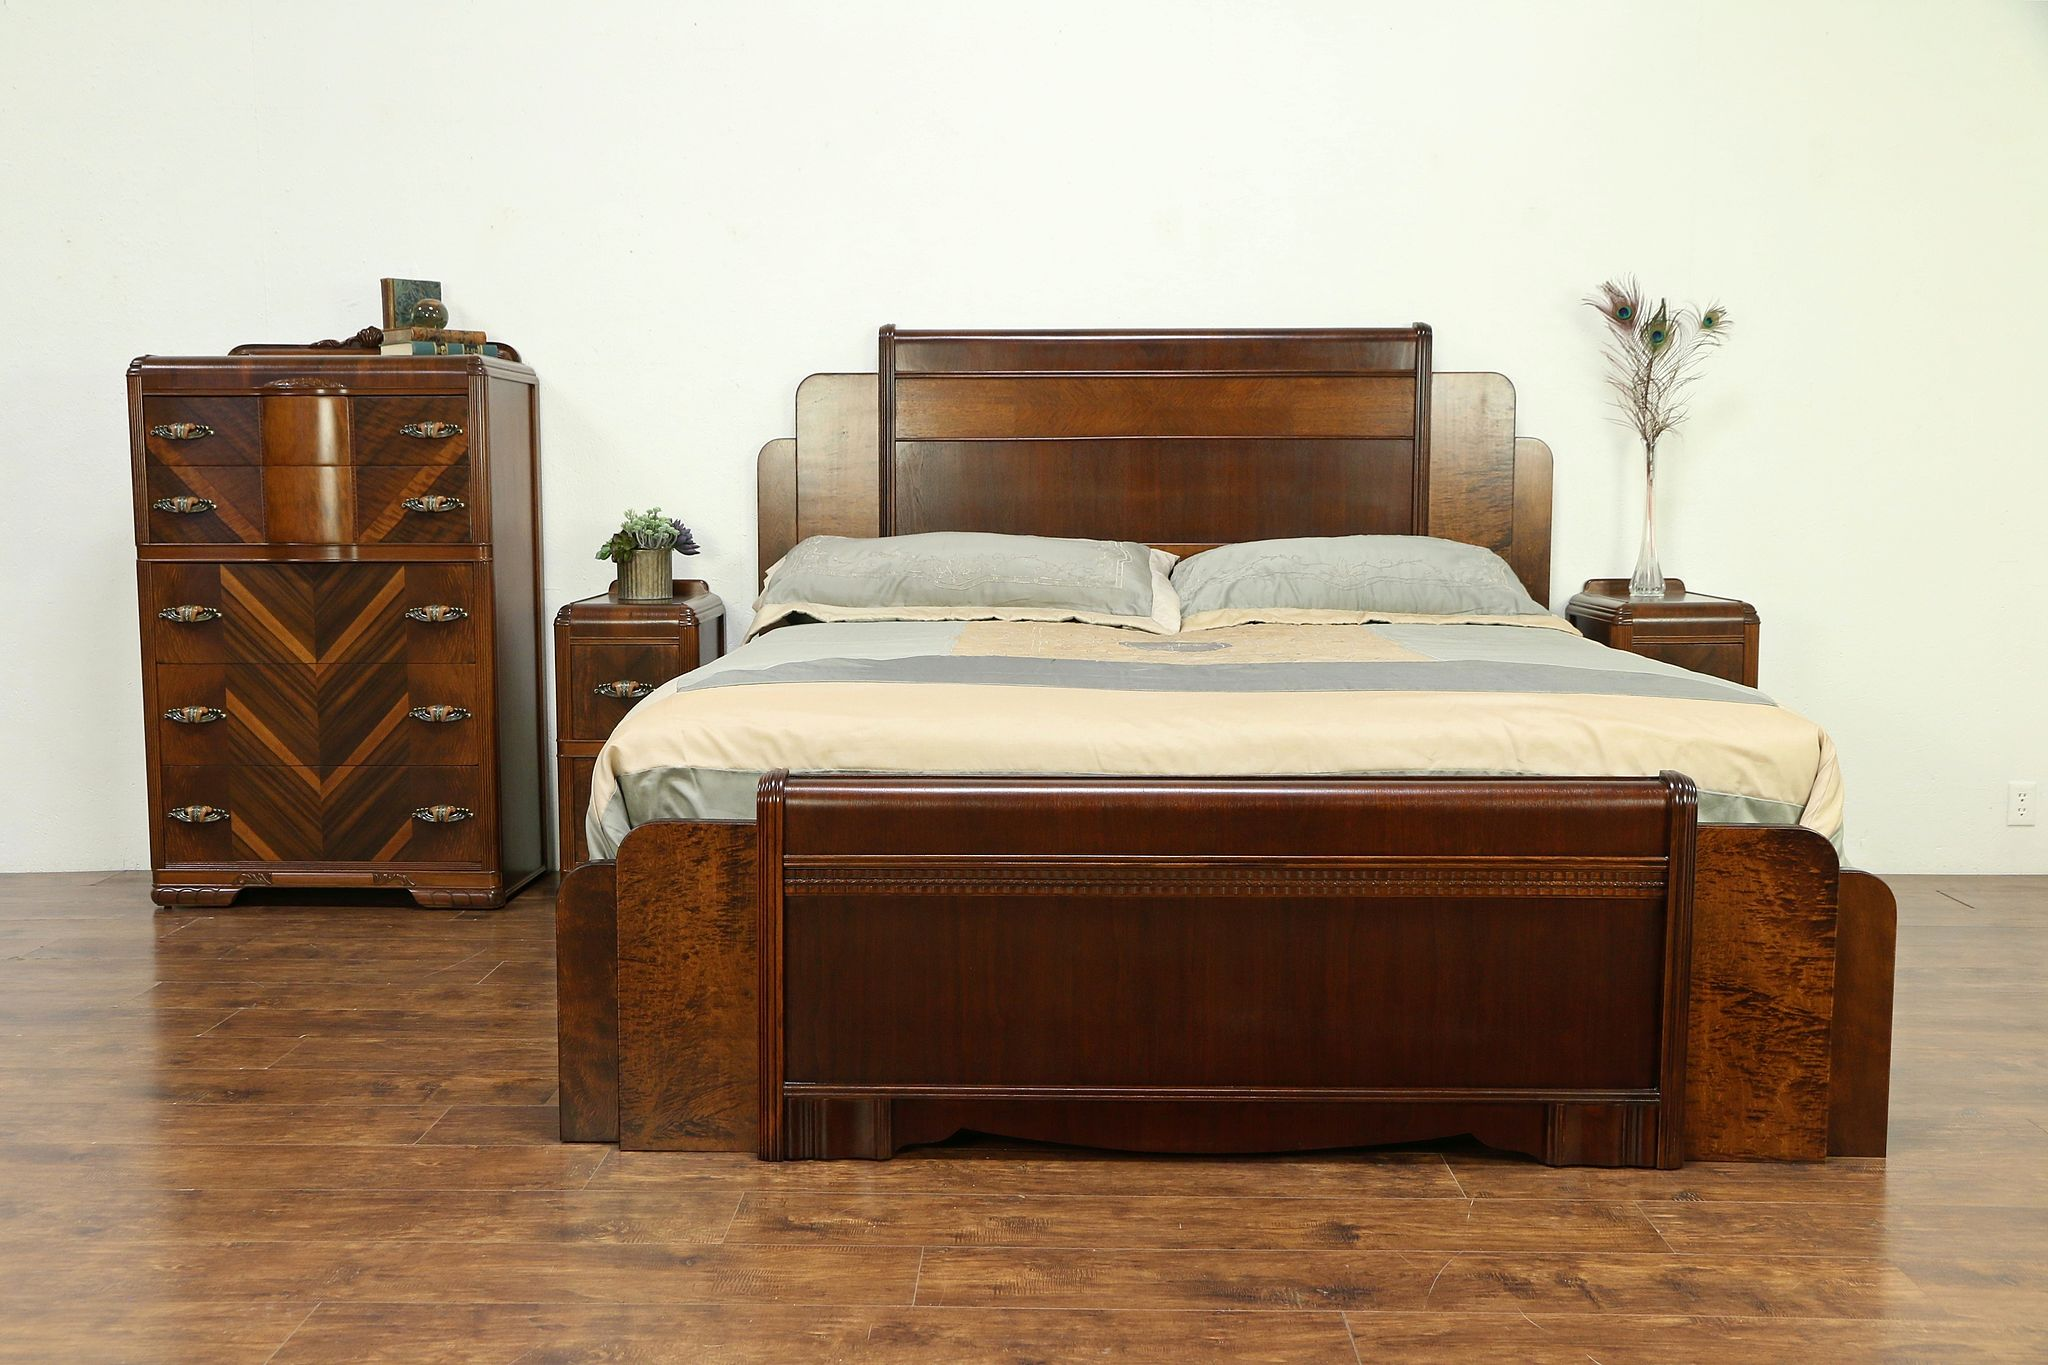 Sold Art Deco Waterfall 1930 S Vintage King Size 4 Pc Bedroom Set 30386 Harp Gallery Antiques Furniture